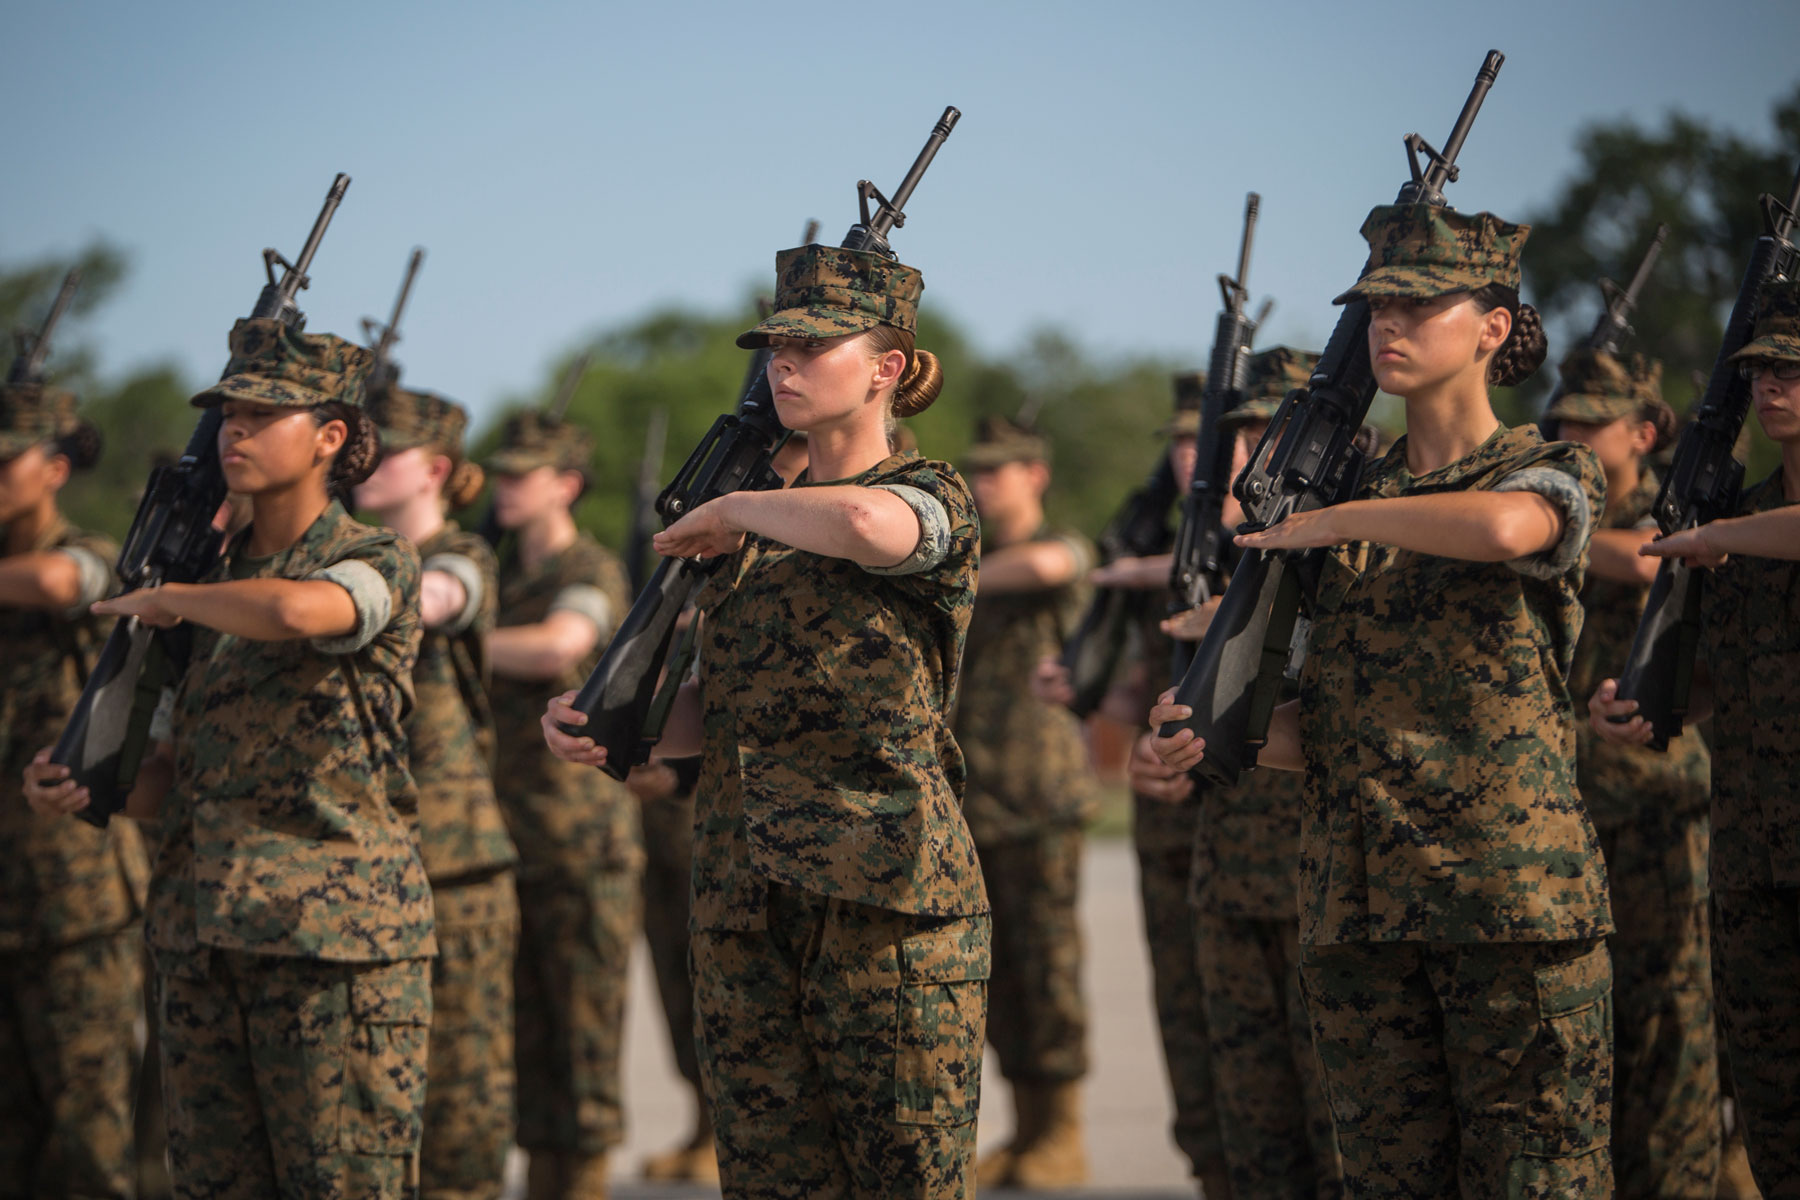 After Court Ruling, Here's What's Next for Women and the Draft | Military .com